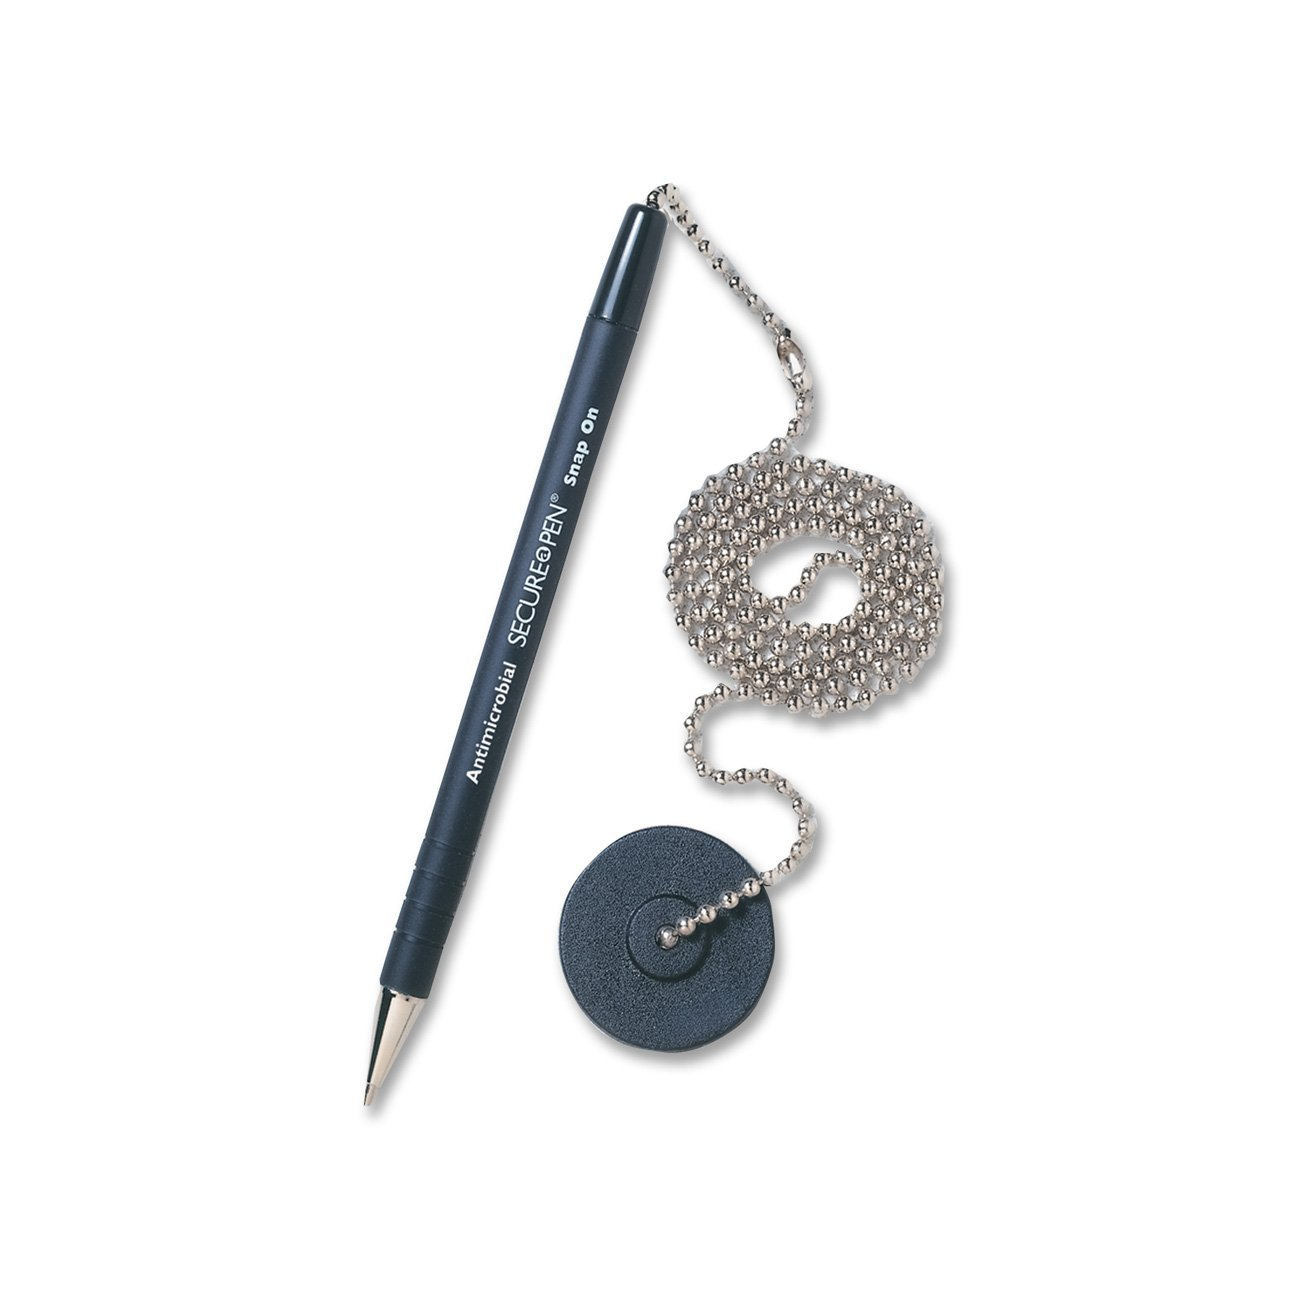 MMF Industries Secure-A-Pen Antimicrobial Counter Pen with Adhesive Base, Medium Point, Black Pen with Black Ink (28904)